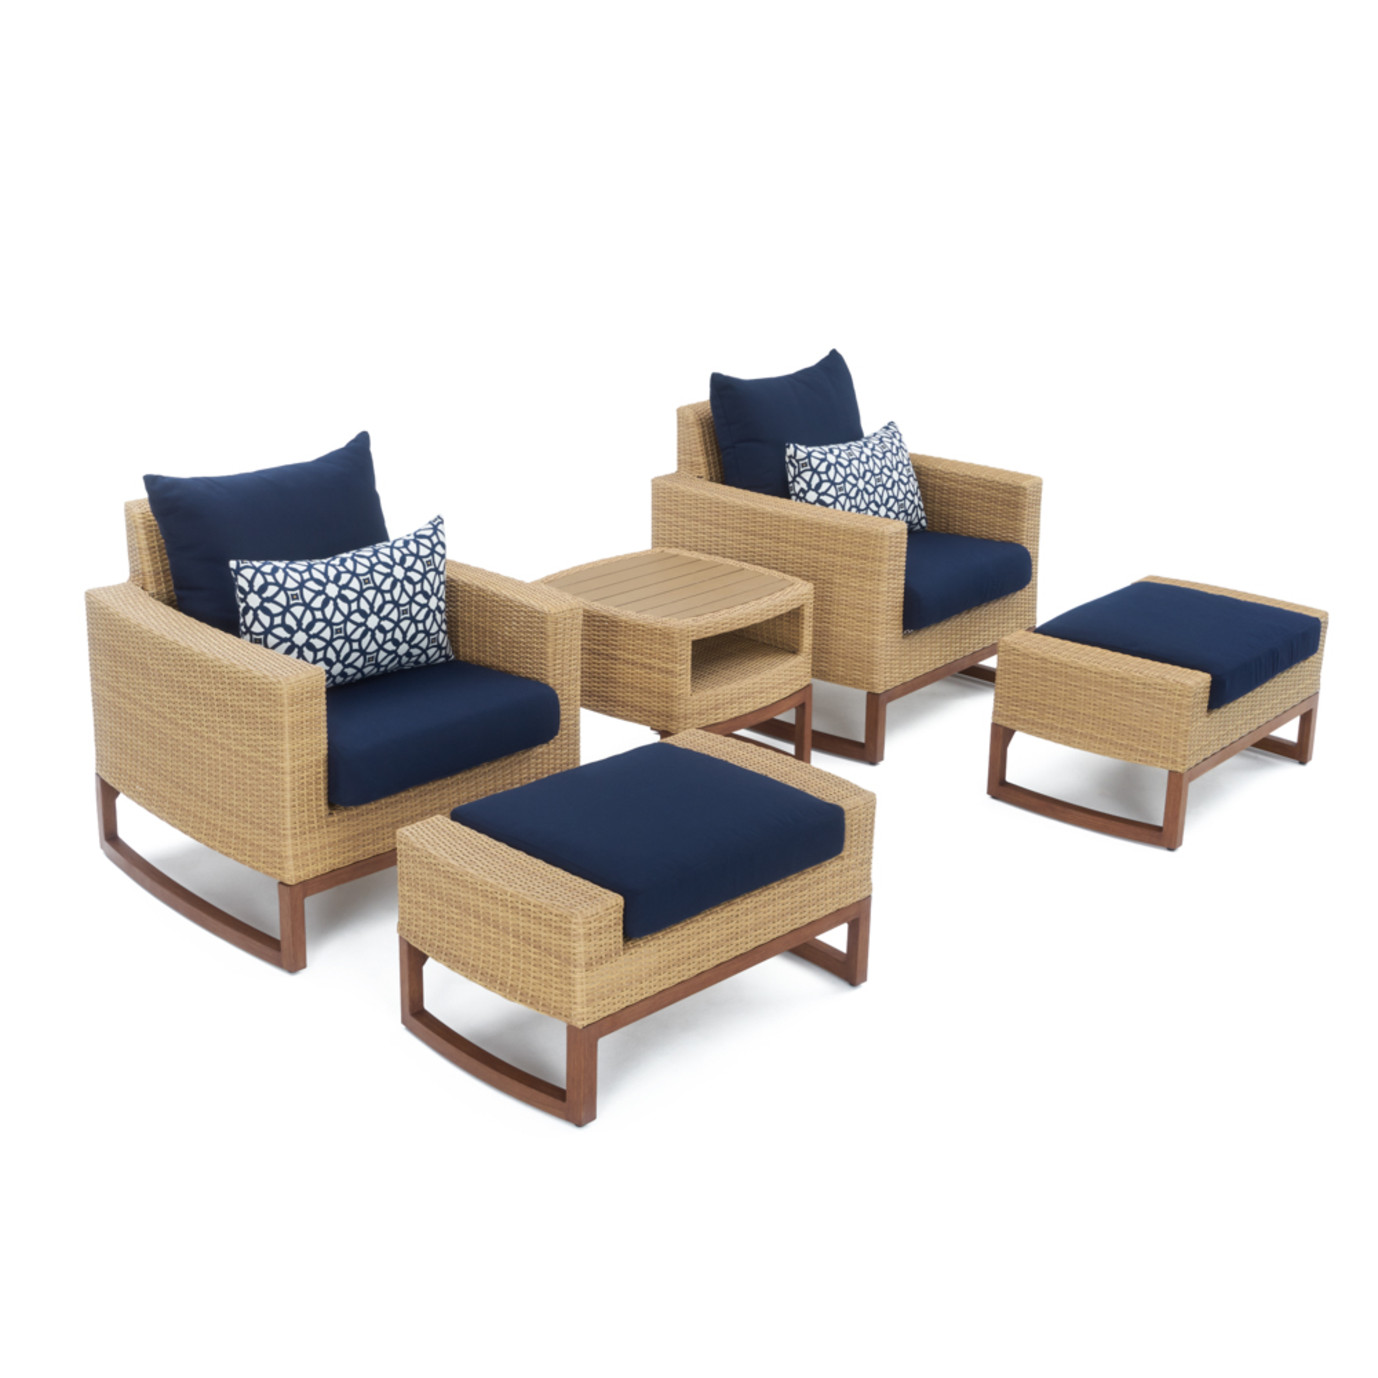 Mili™ 8pc Deep Seating Set - Navy Blue